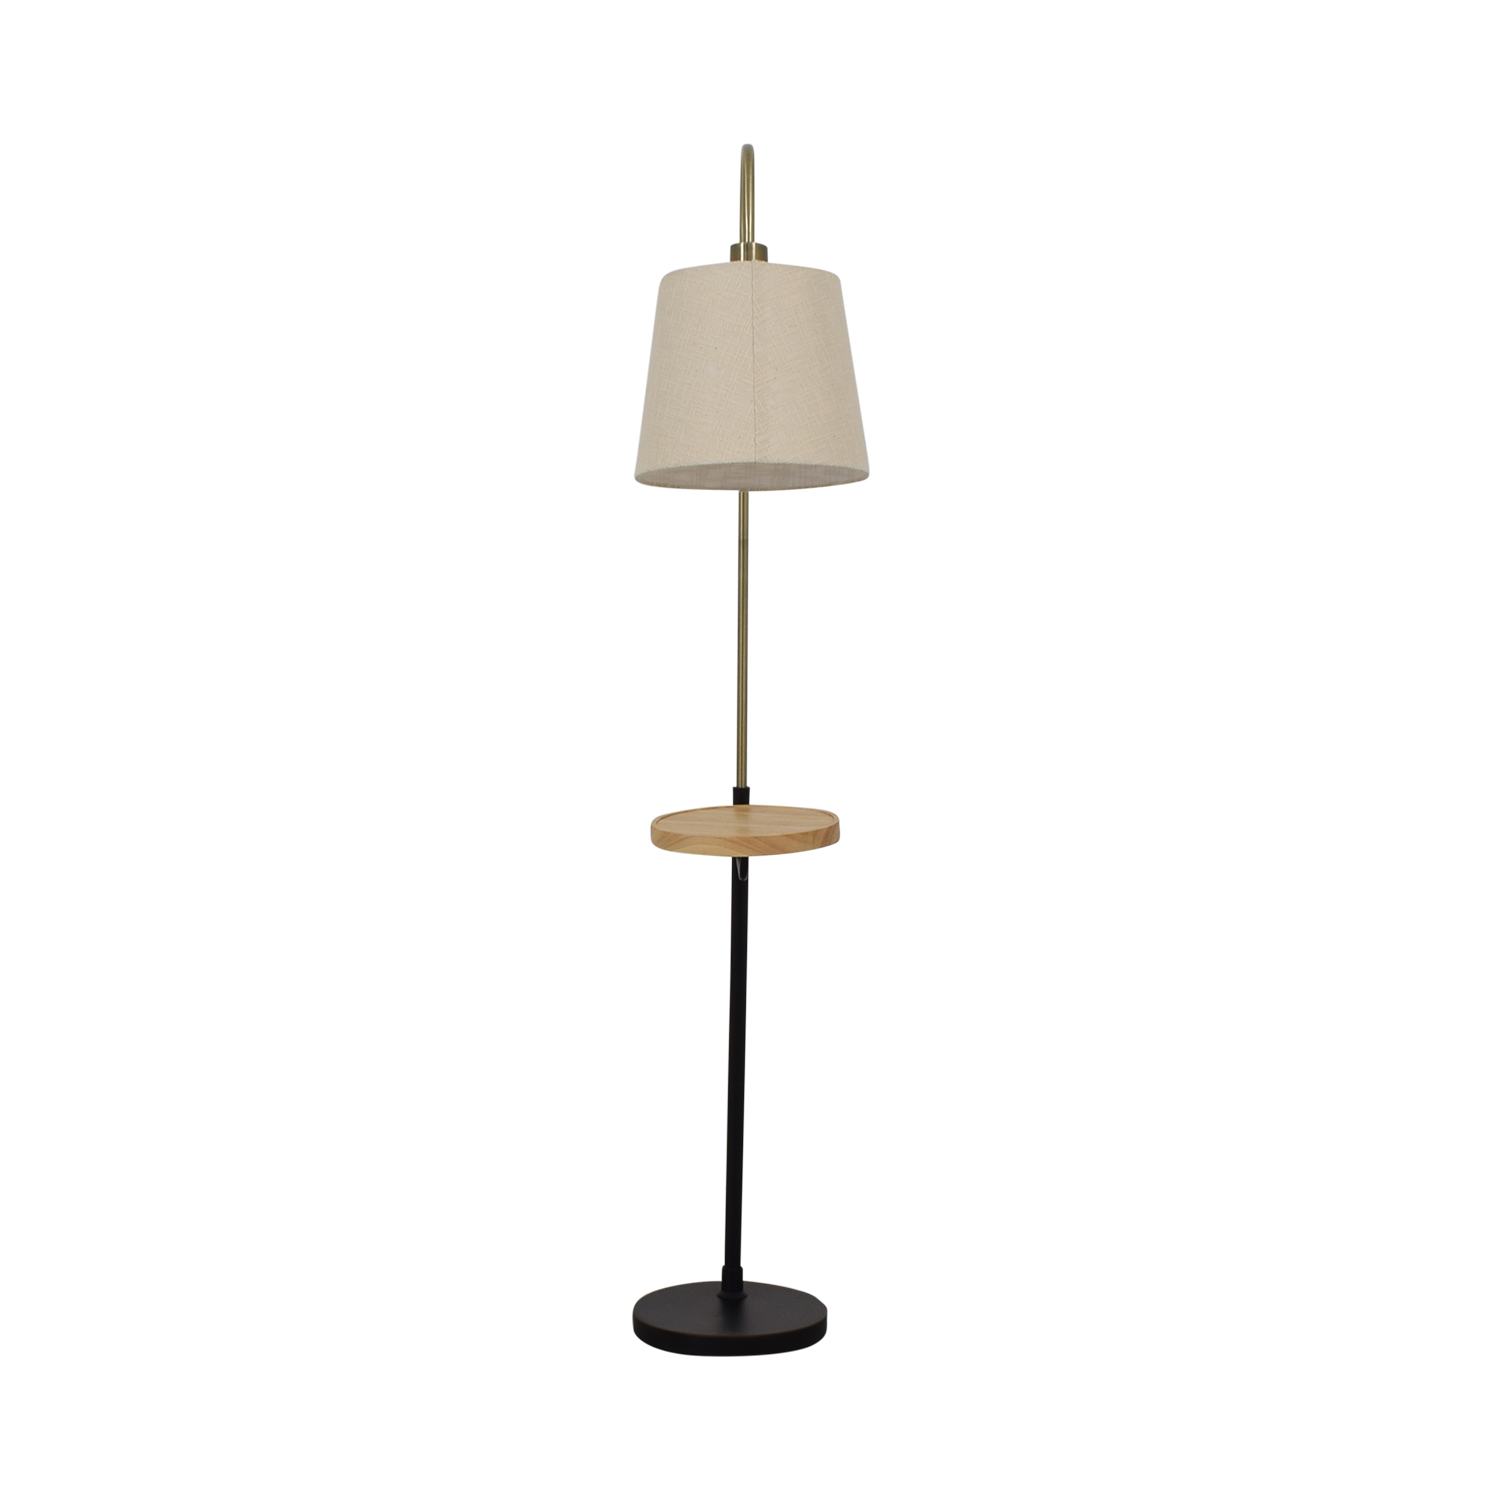 shop Pottery Barn Pottery Barn Edward Floor Lamp online